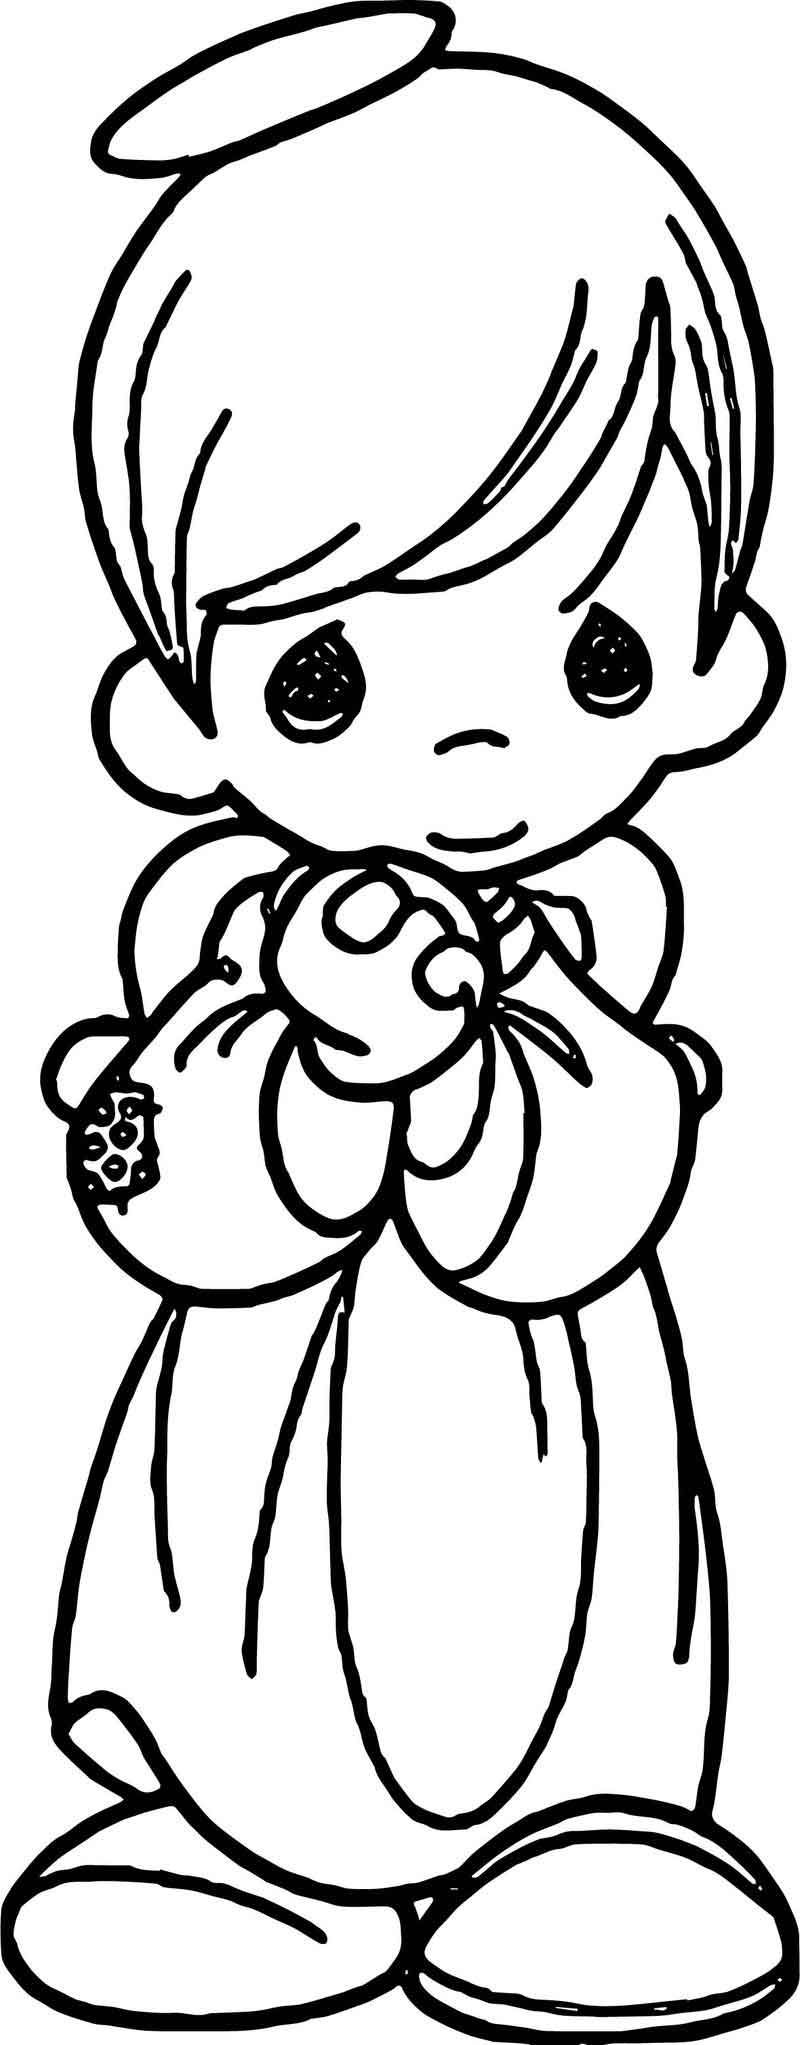 Precious Moments Boy Angel Coloring Page Angel Coloring Pages Precious Moments Coloring Pages Coloring Pages